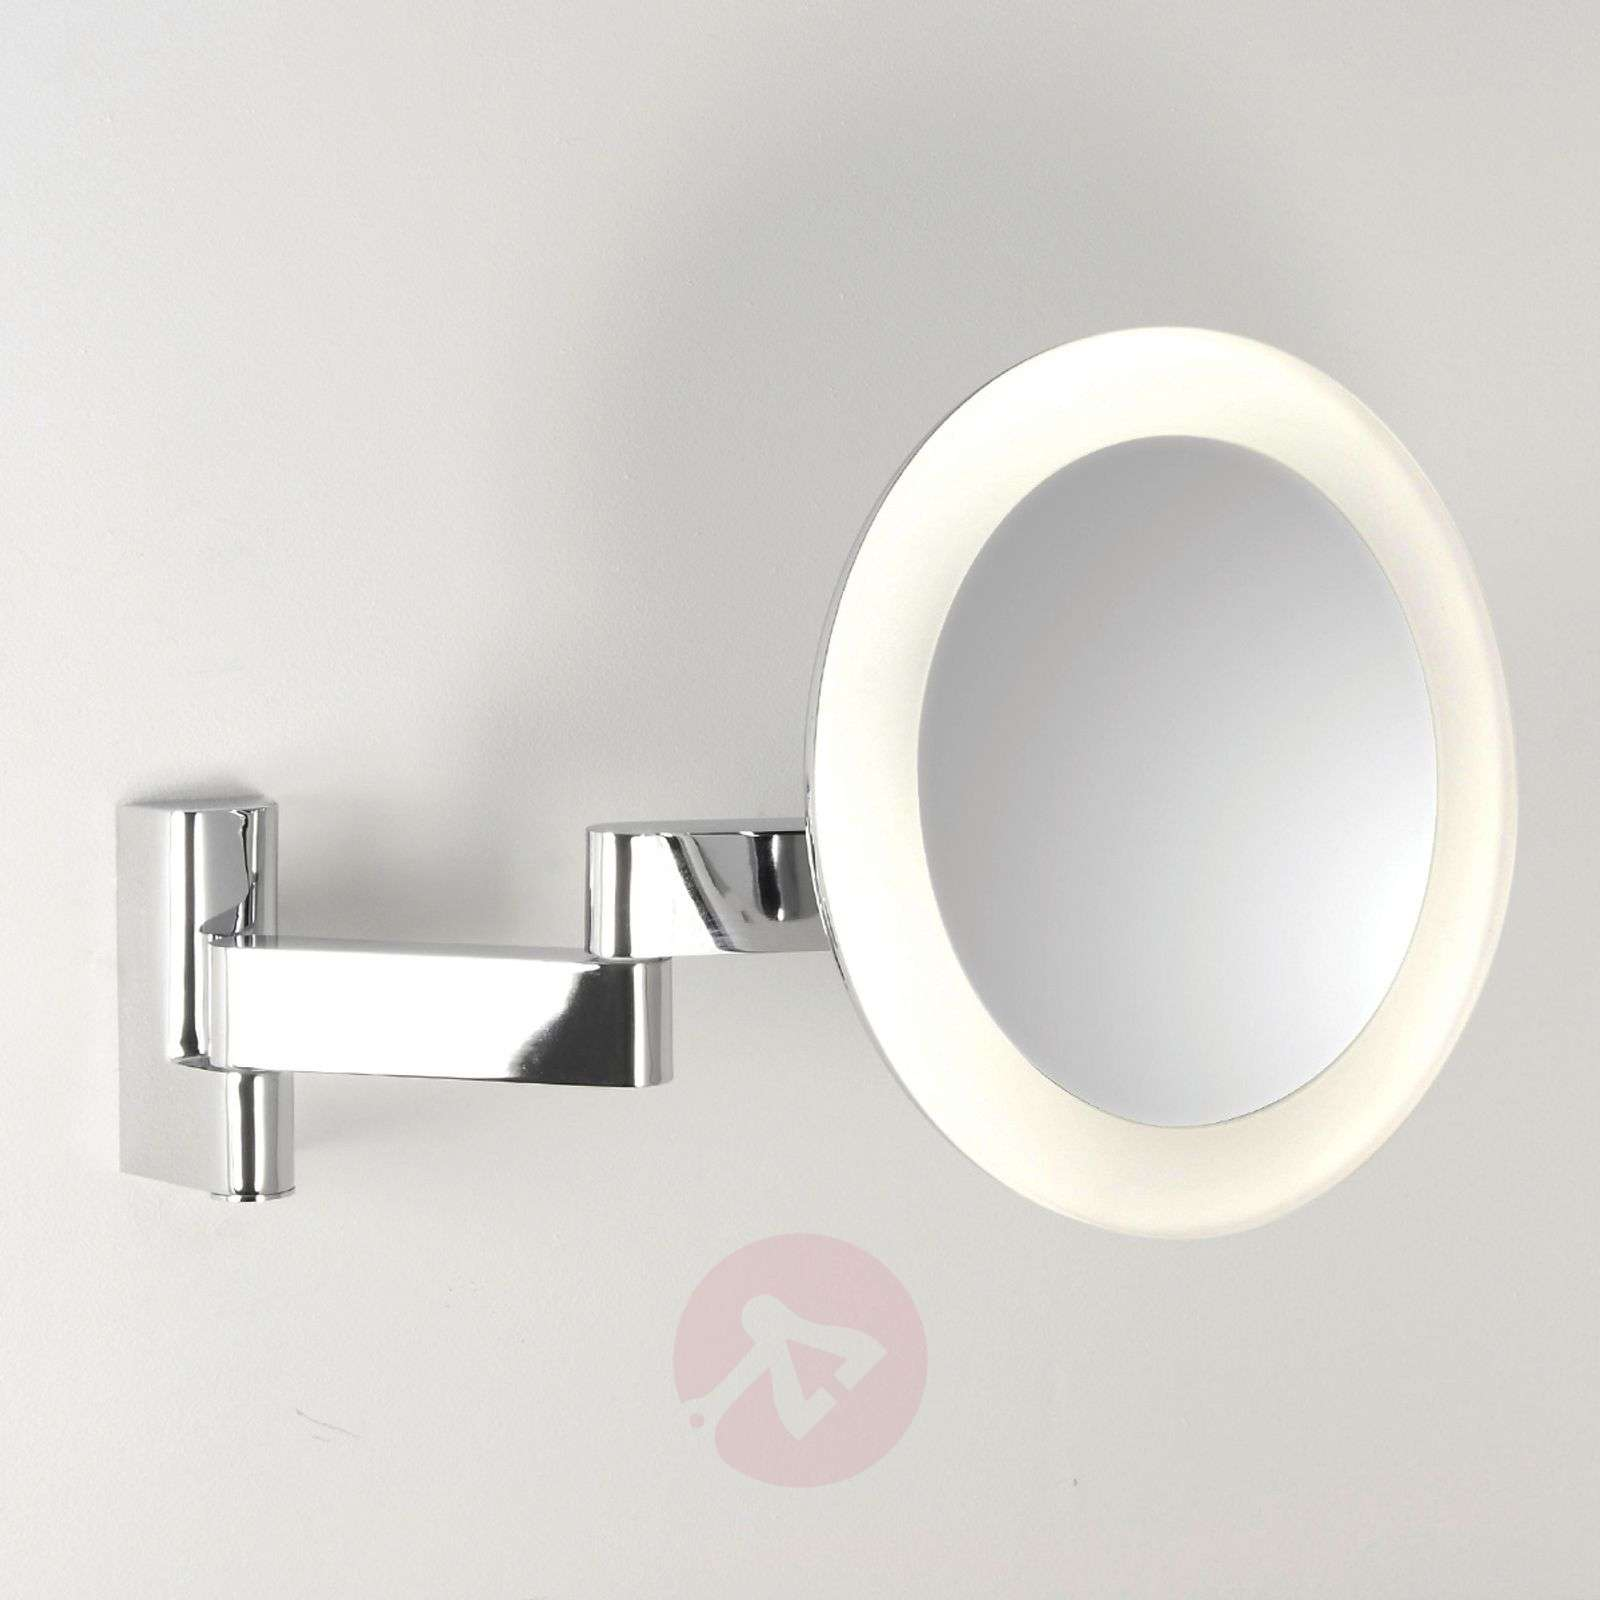 Niimi Round Cosmetic Mirror with LED Light-1020021-02